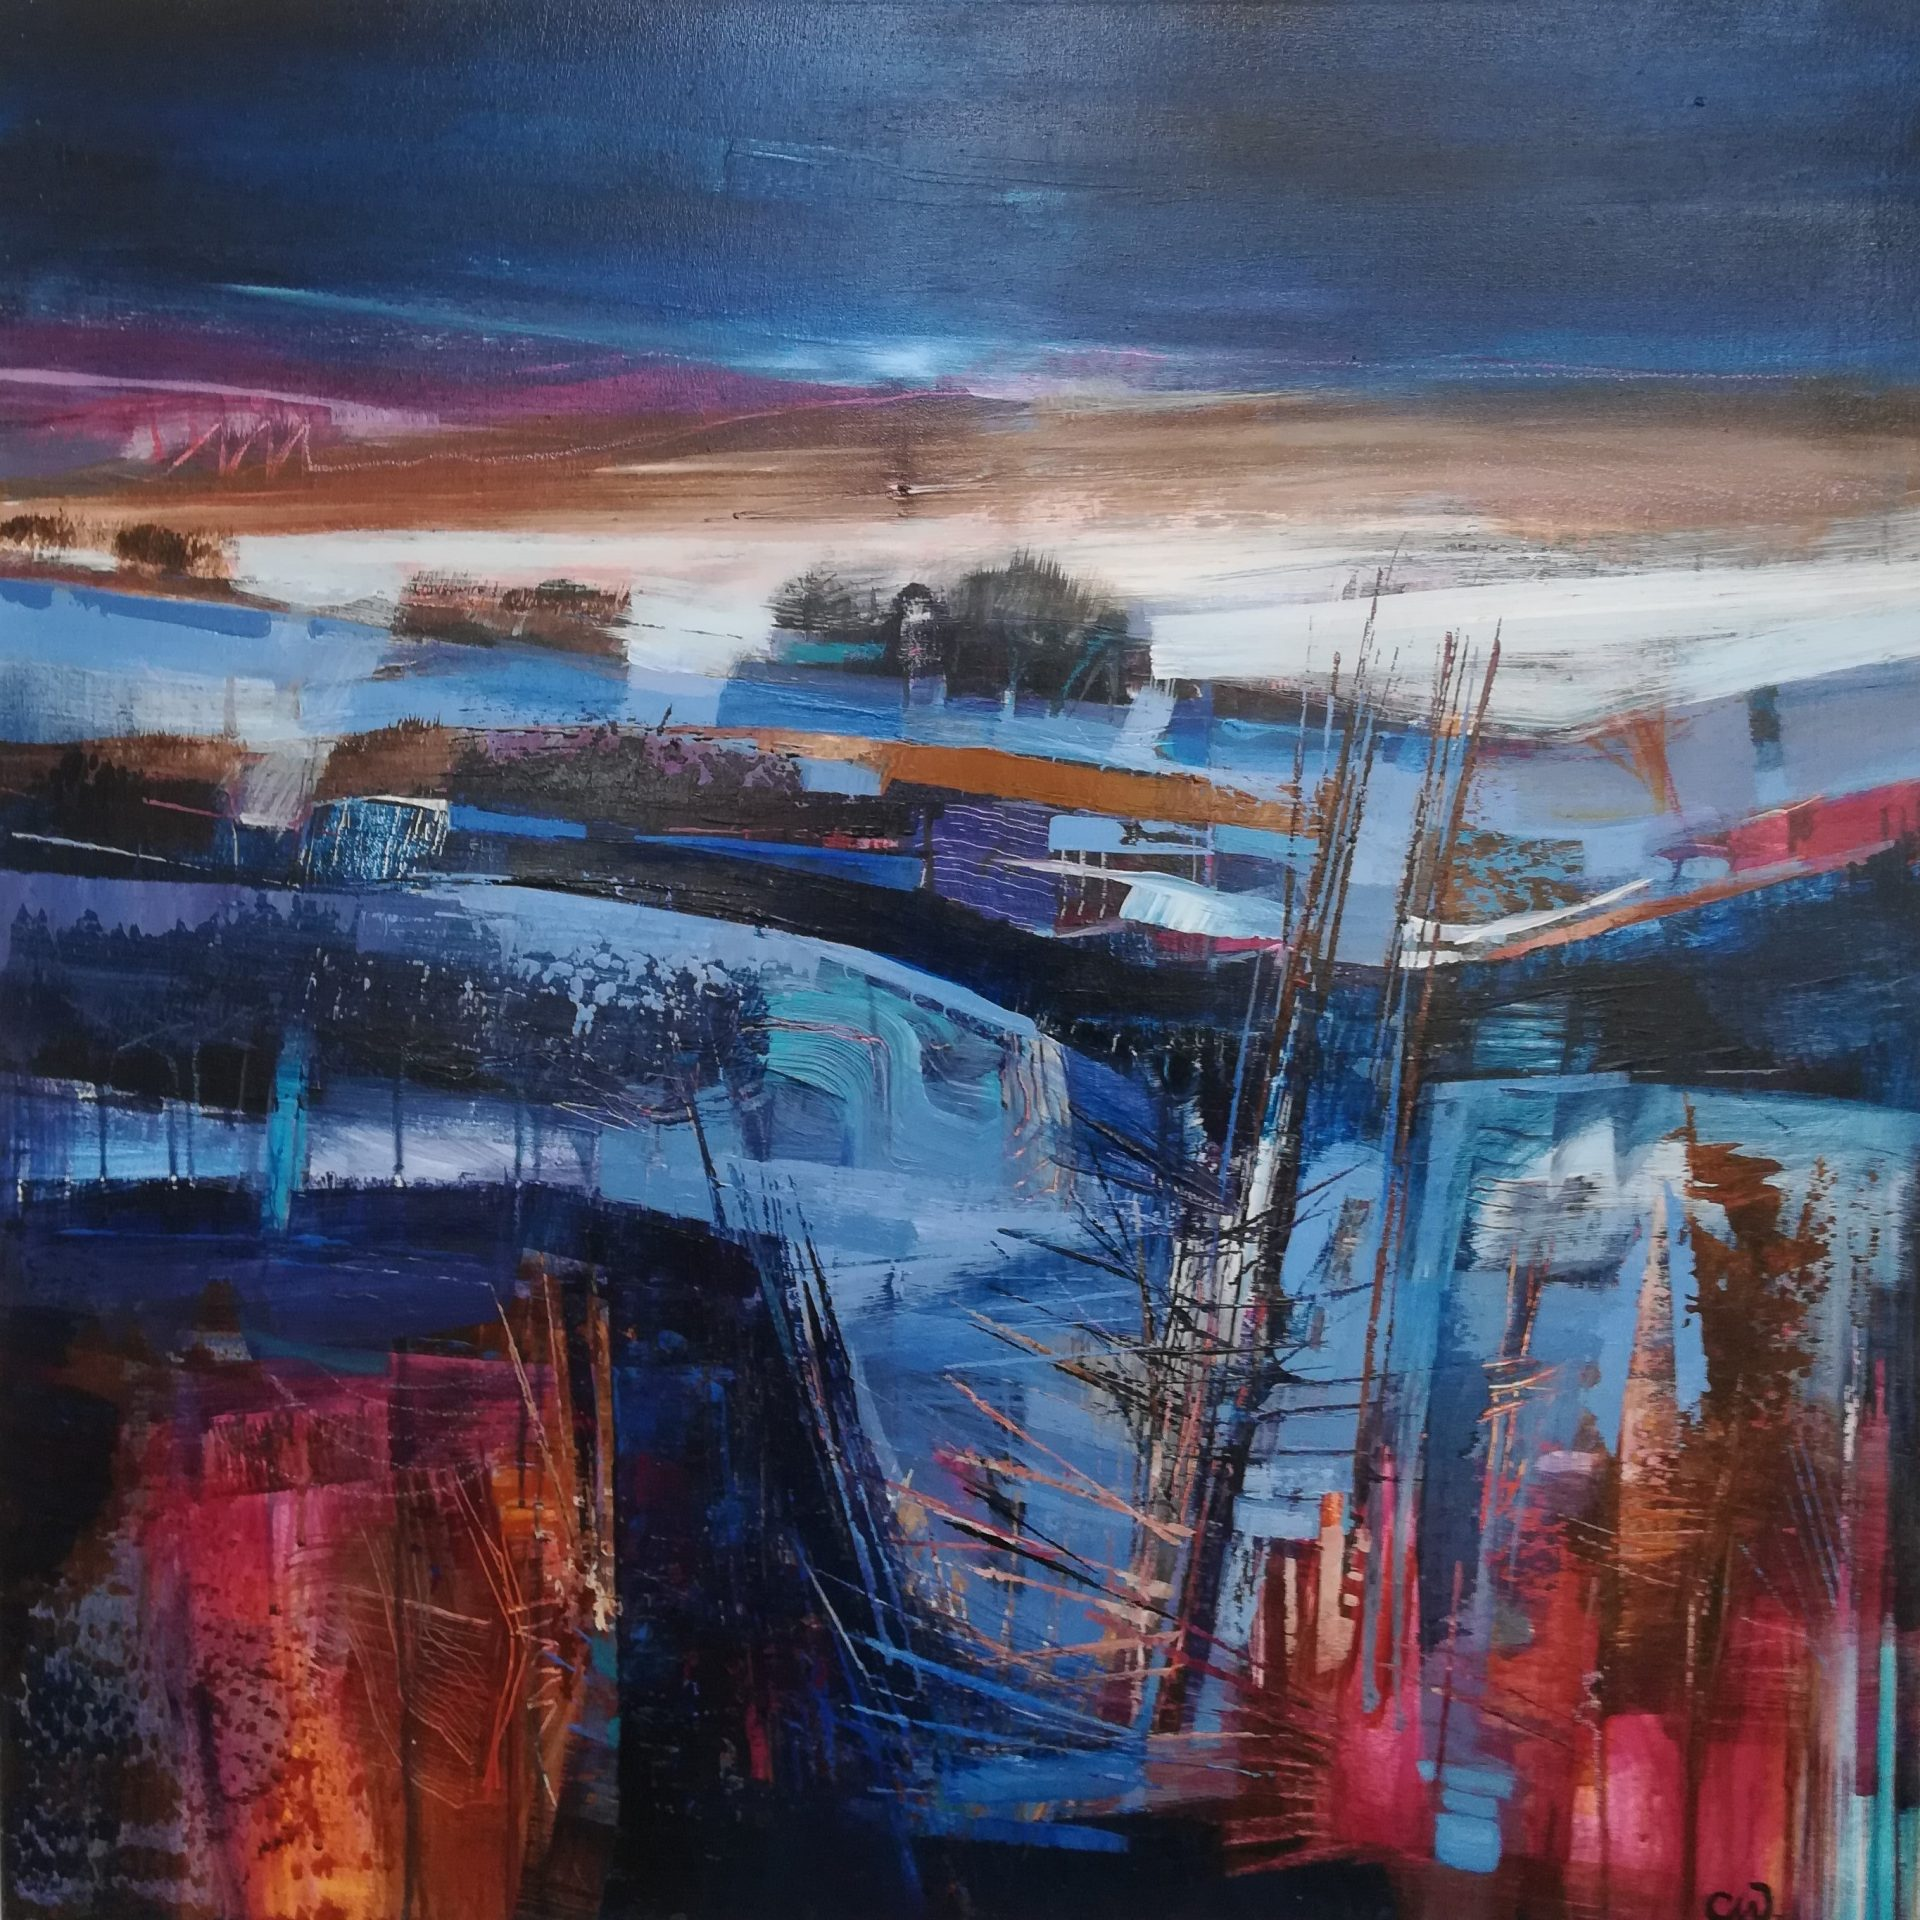 Celia Wilkinson Evening Light abstract sunset painting for sale